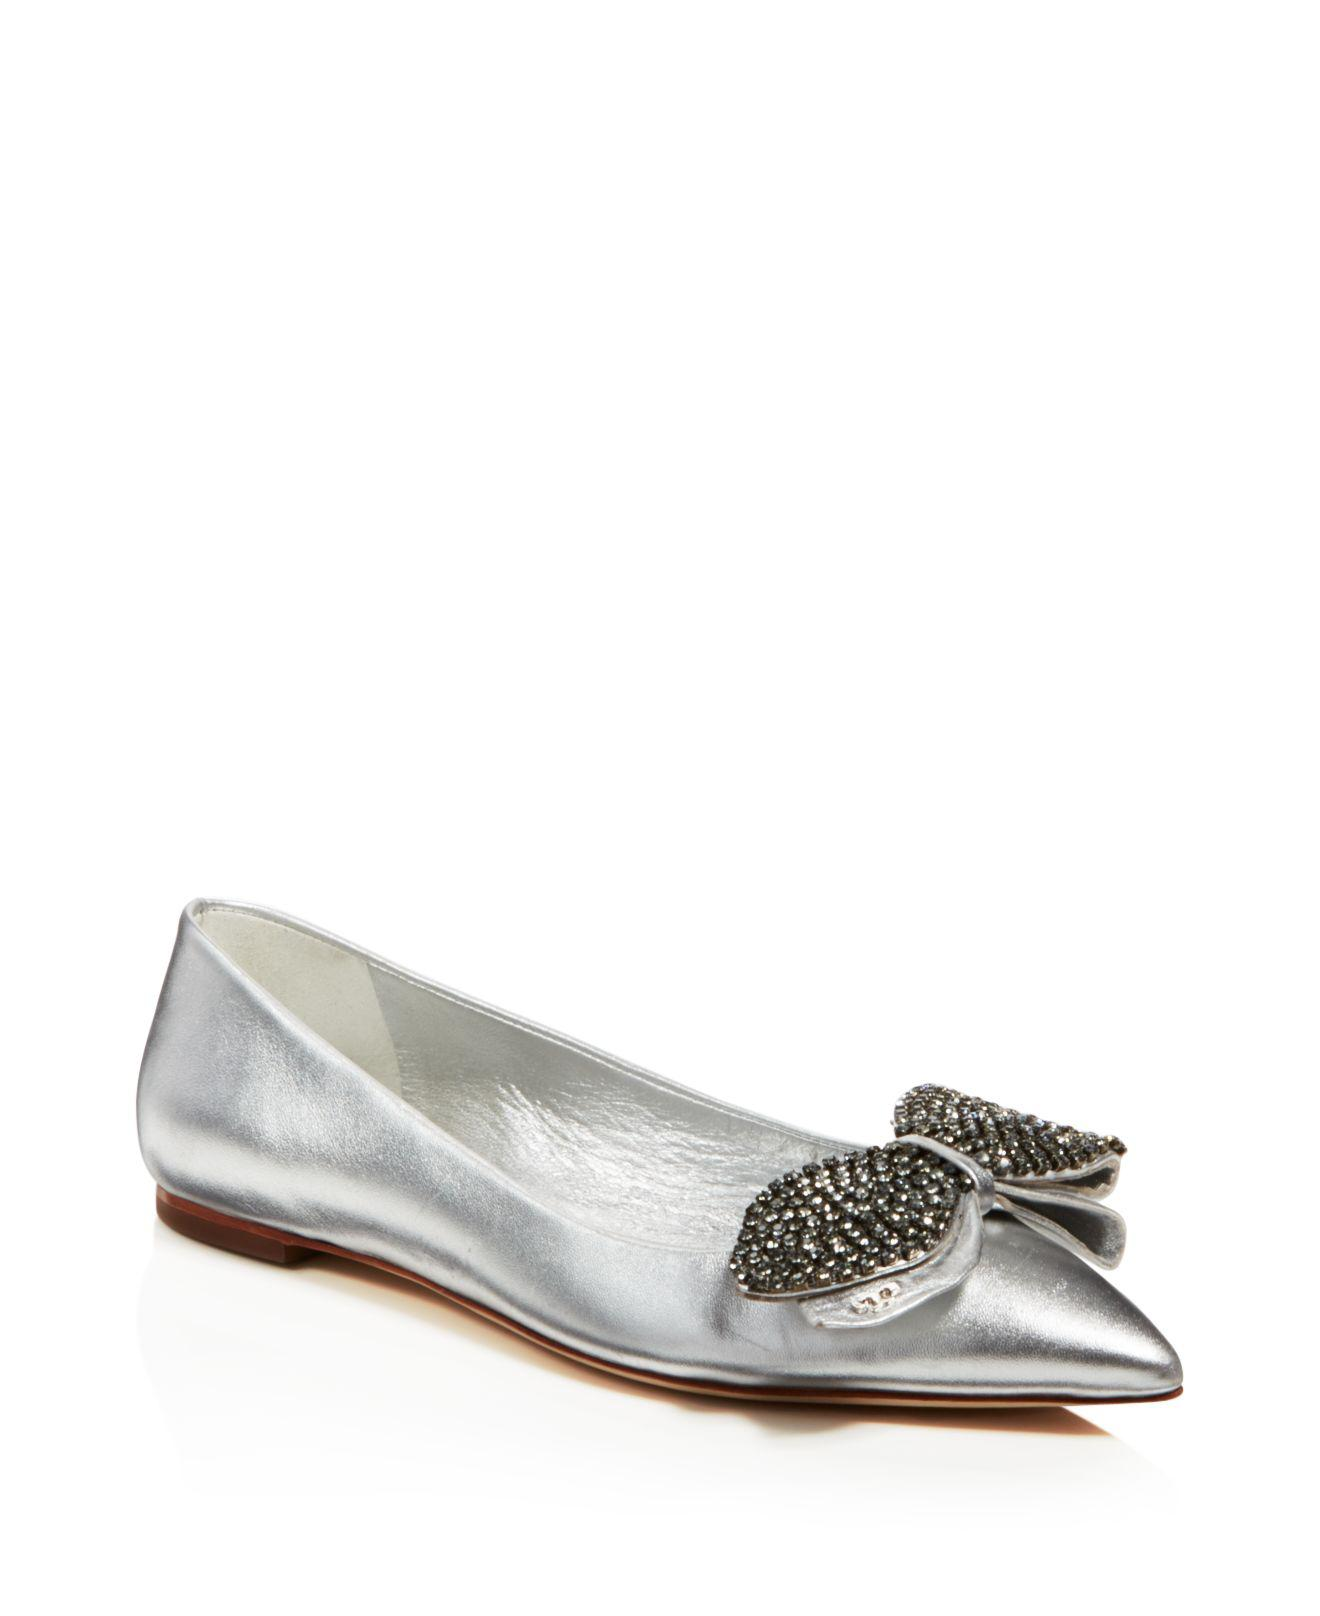 Tory Burch Embellished Metallic Flats new styles online TM6v1Q4PS